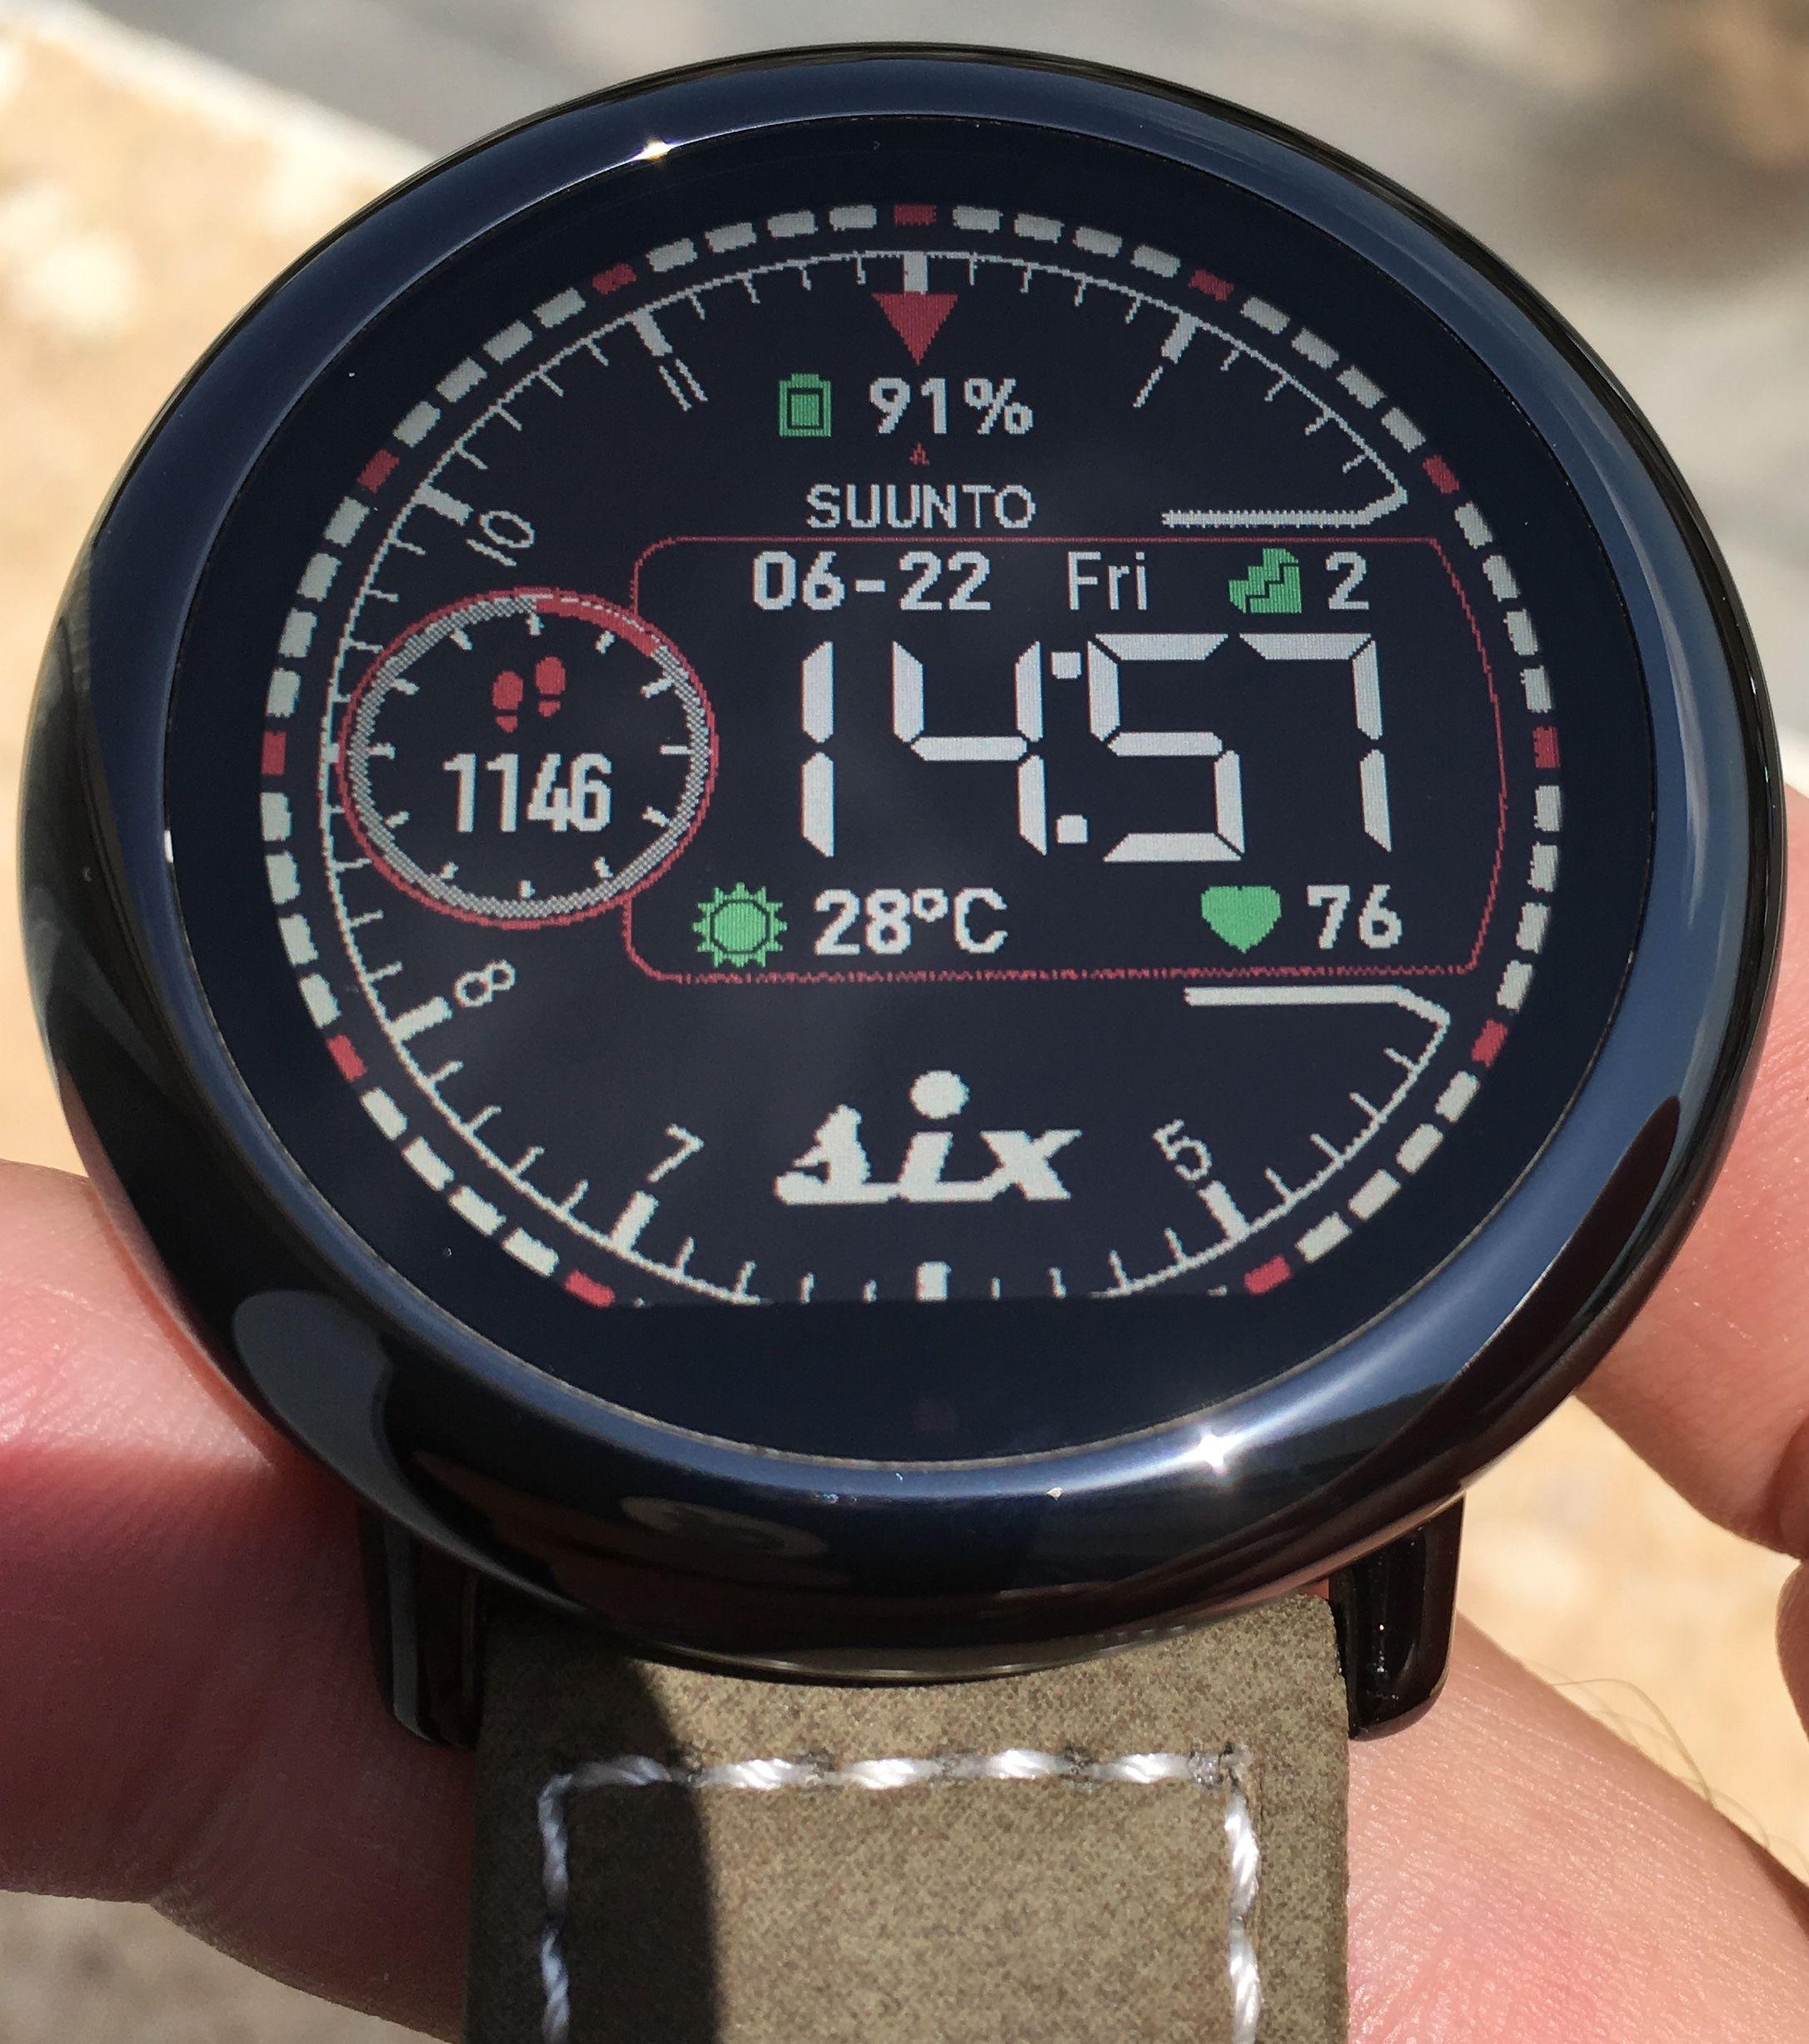 Pin by Offir Avraham on amazfit pace Watch faces